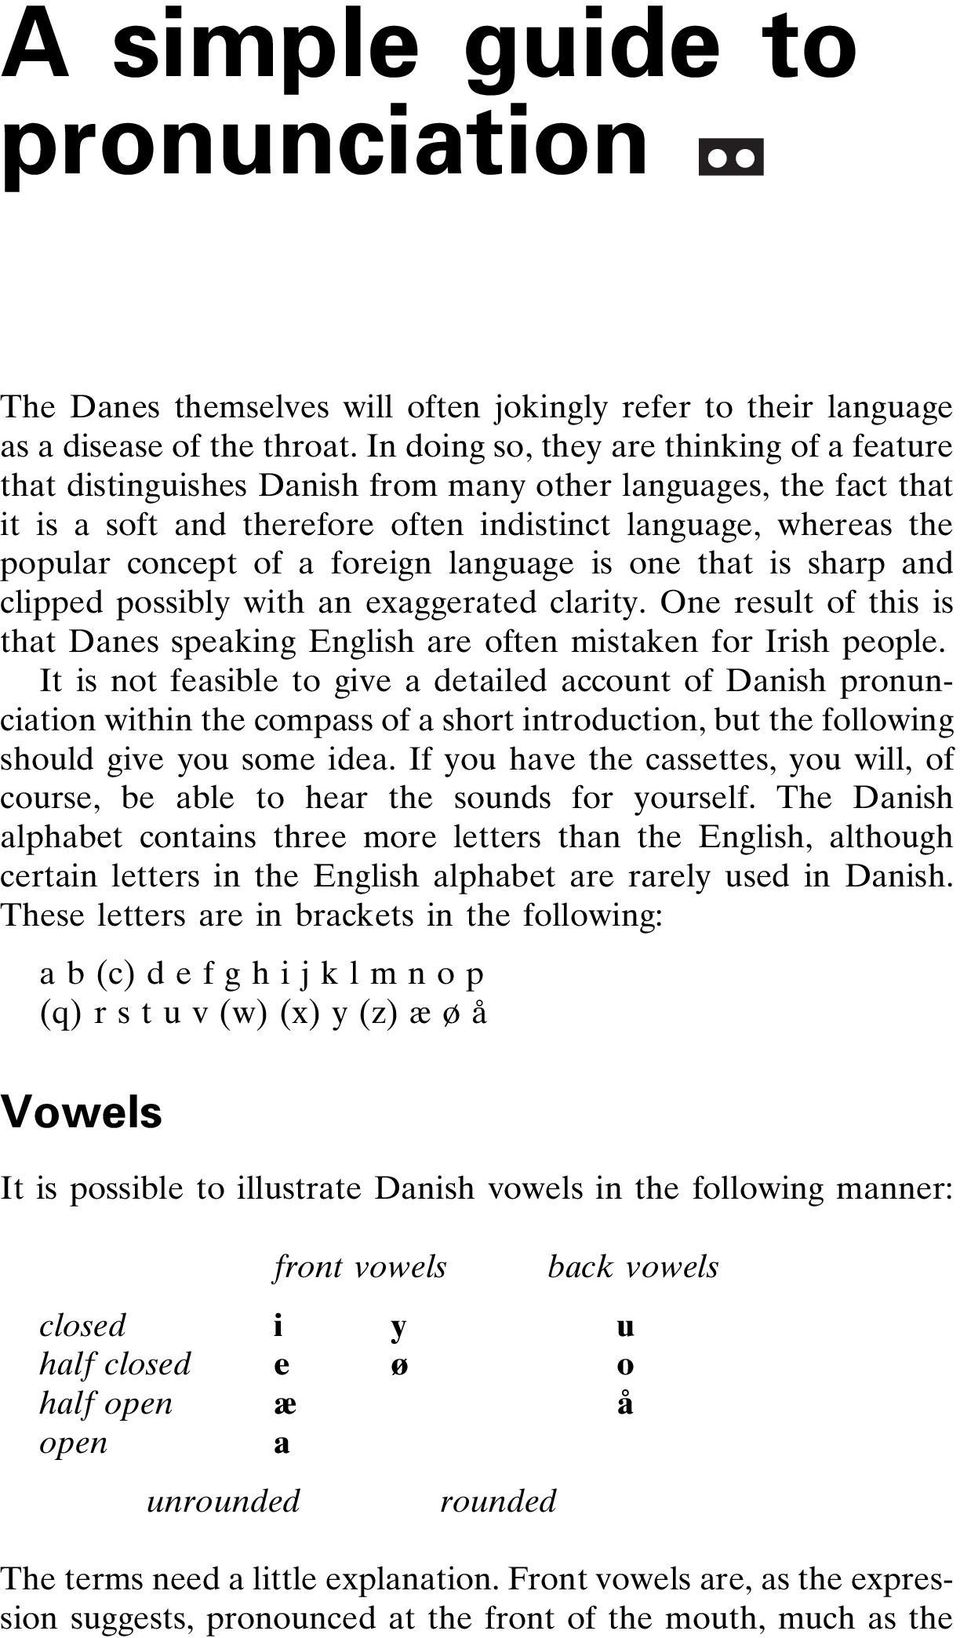 foreign language is one that is sharp and clipped possibly with an exaggerated clarity. One result of this is that Danes speaking English are often mistaken for Irish people.